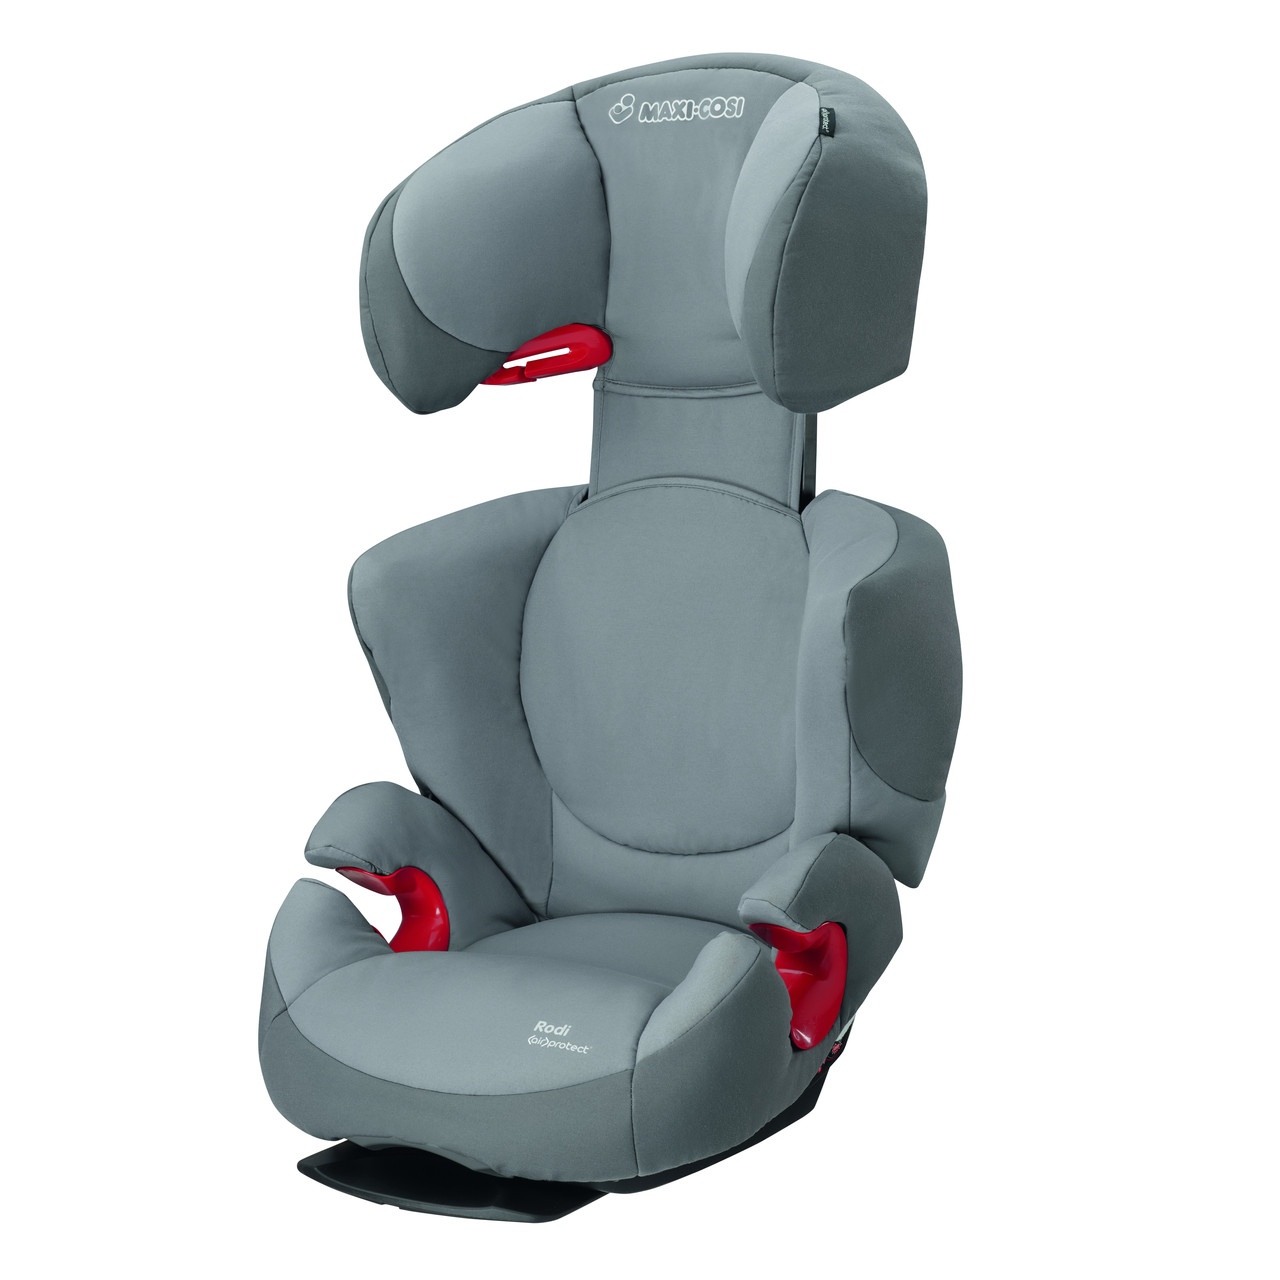 Автокресло Maxi Cosi Rodi AP 15-36 кг (75108960) Concrete Grey (серый)